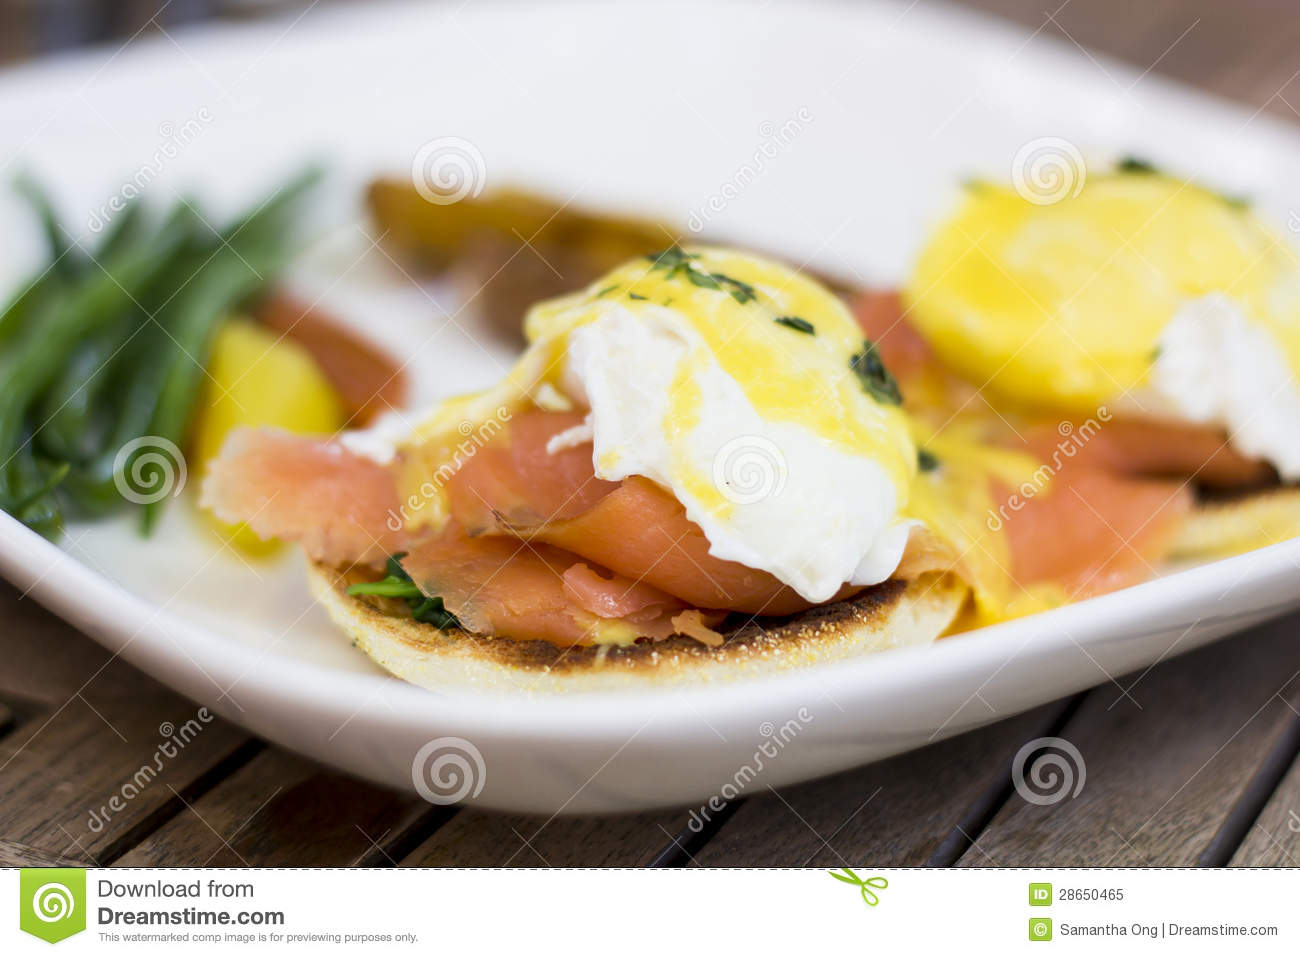 Eggs Benedict With Bearnaise Sauce  Smoked Salmon Royalty Free